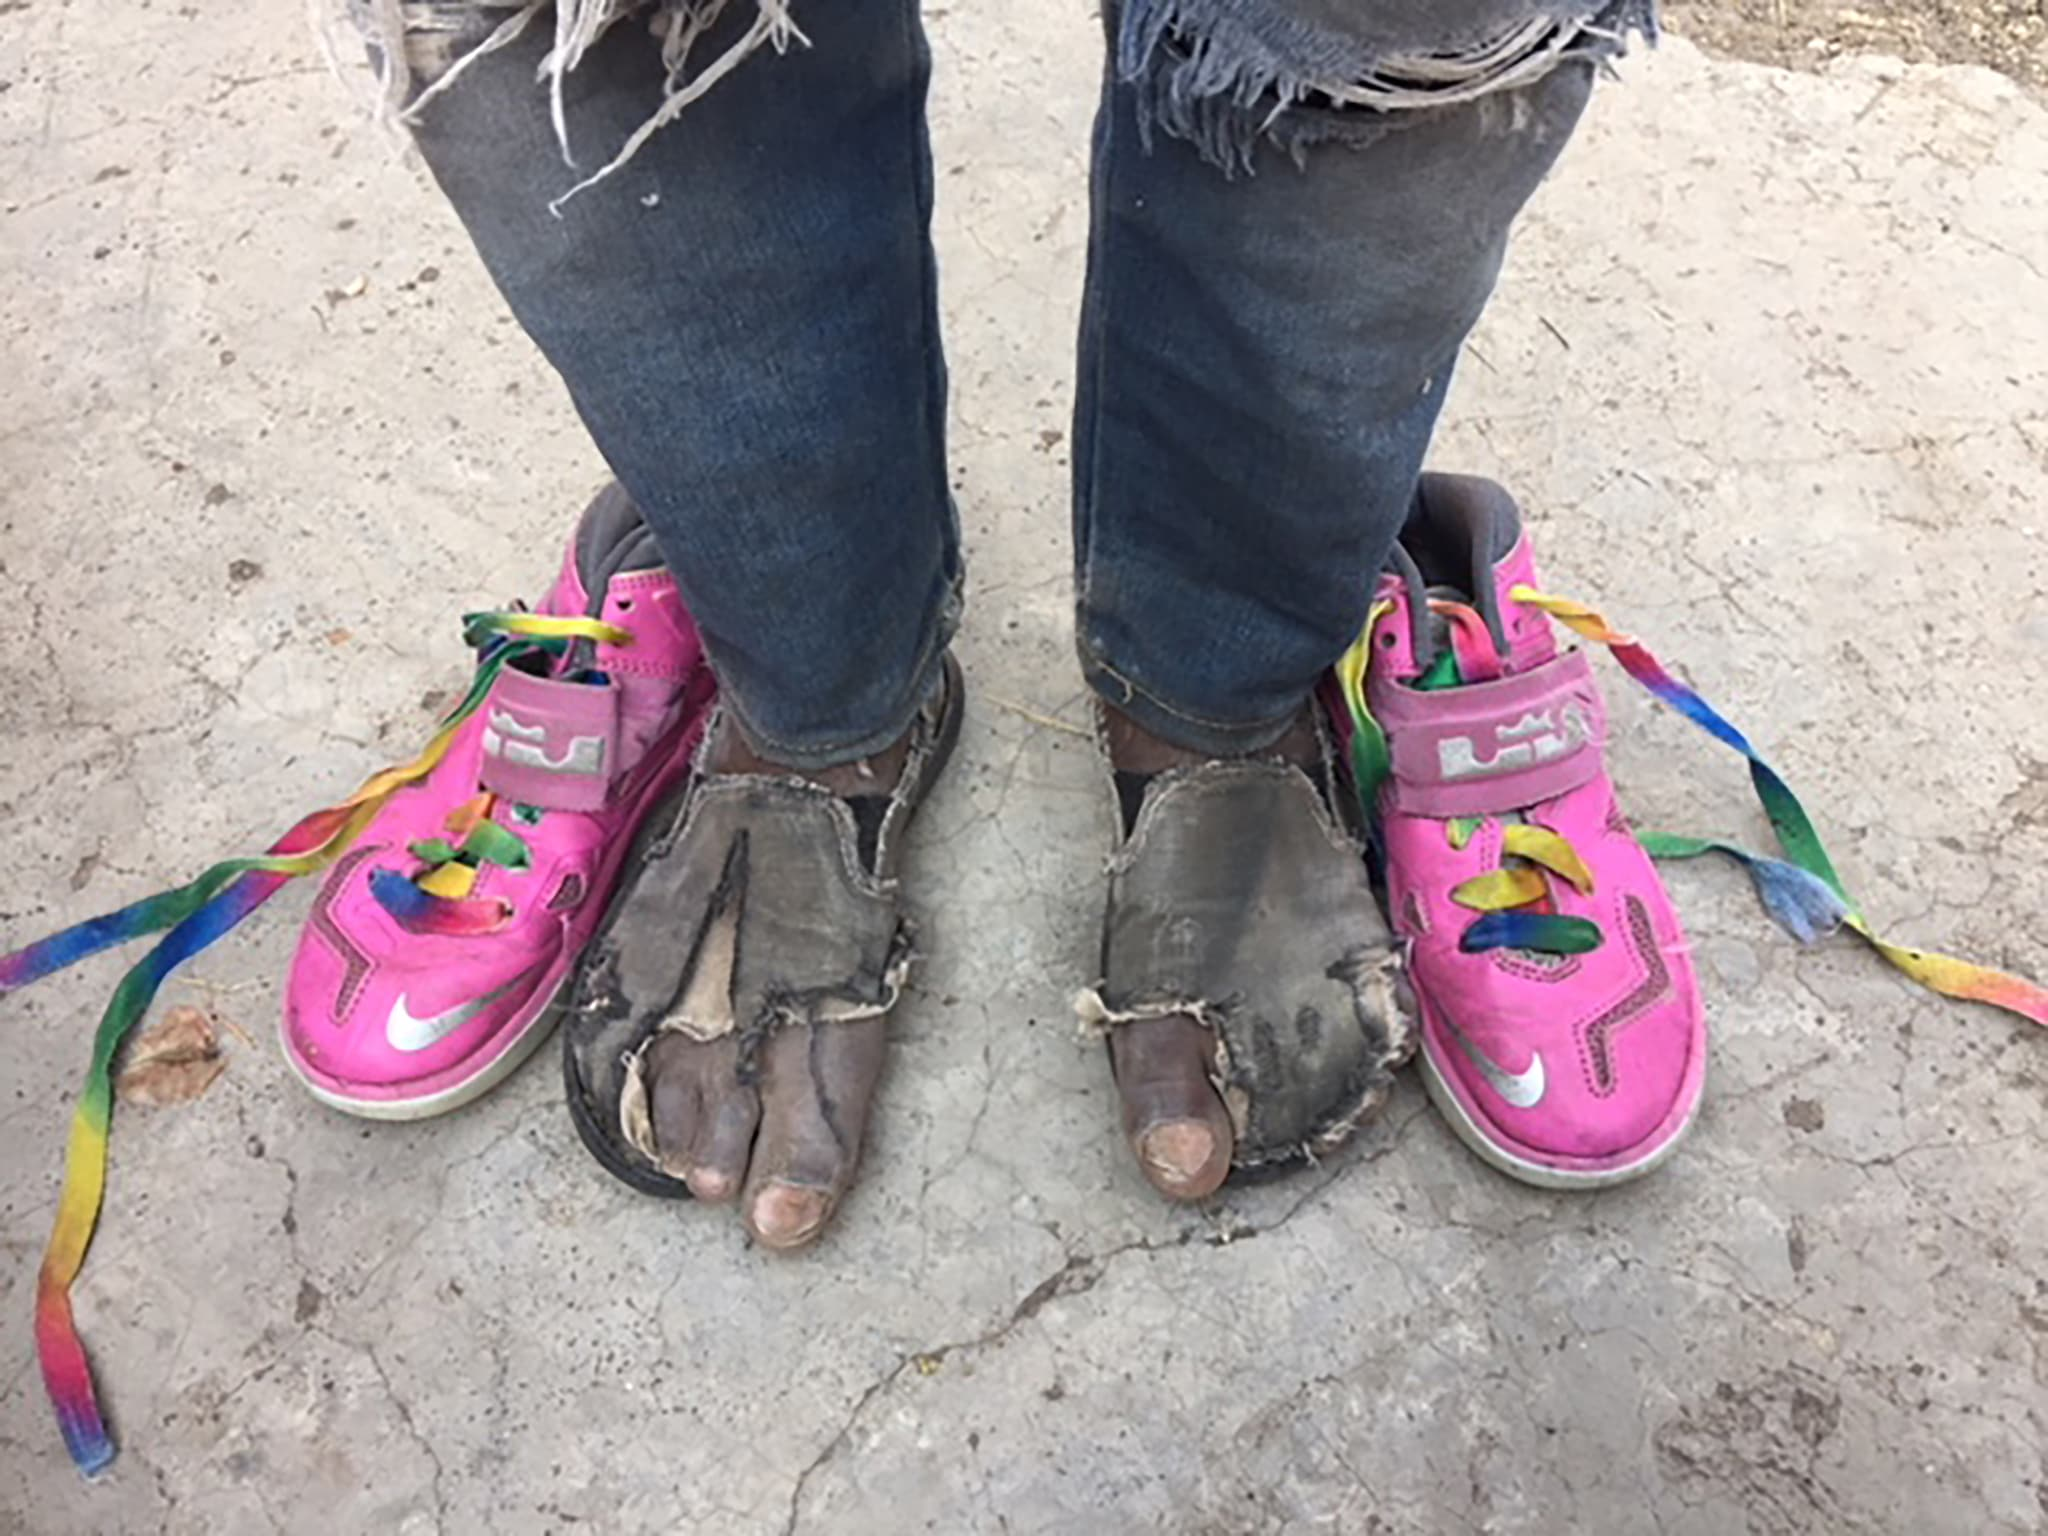 This before and after photo shows the ongoing need for shoes that our children face.  Your donations helped us deliver thousands of pairs of shoes to needy recipients.